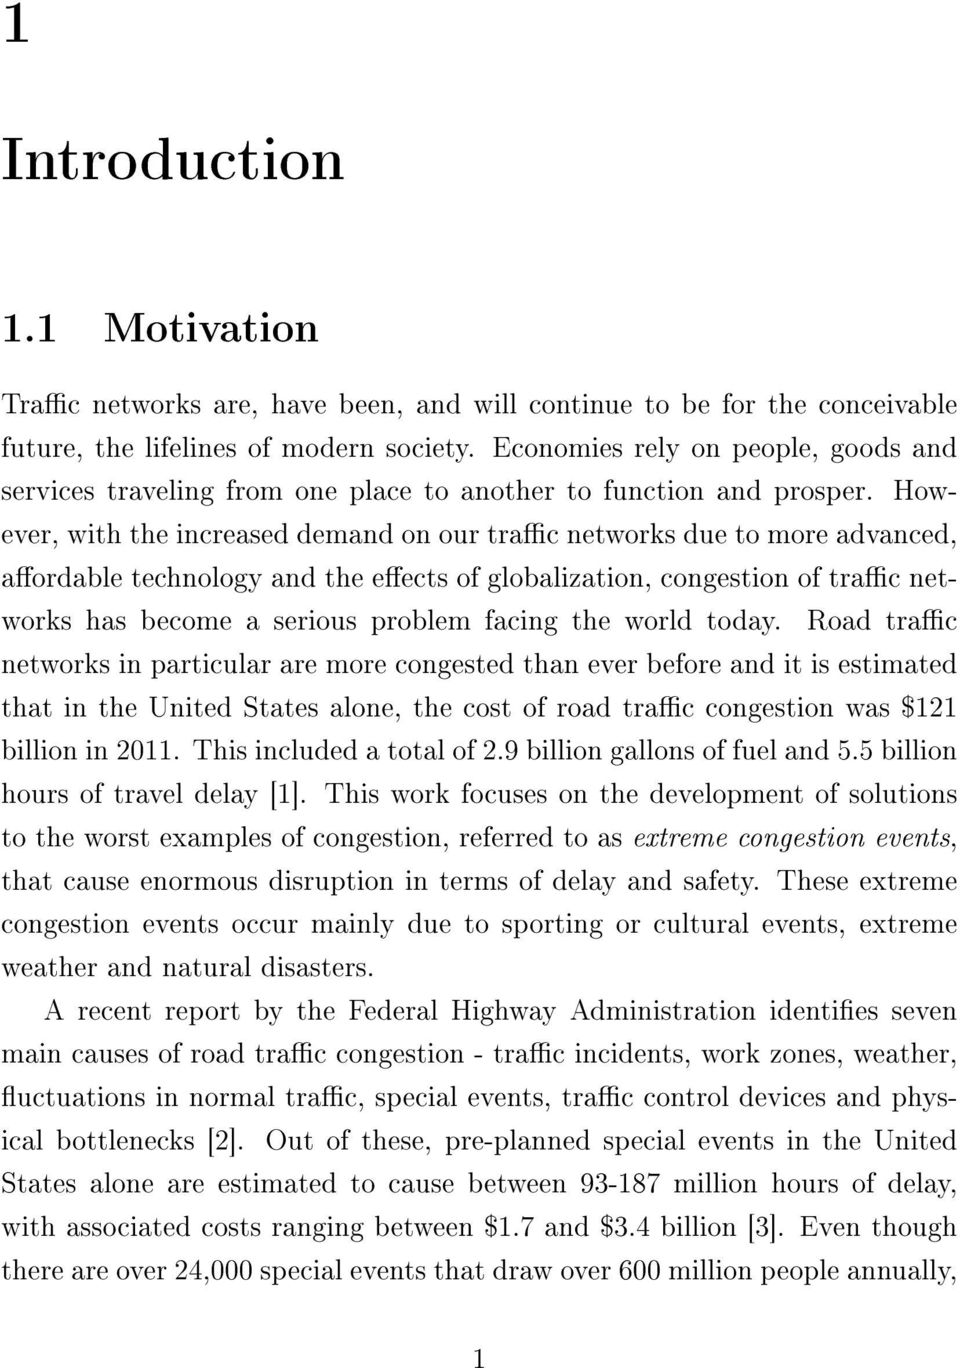 However, with the increased demand on our trac networks due to more advanced, aordable technology and the eects of globalization, congestion of trac networks has become a serious problem facing the